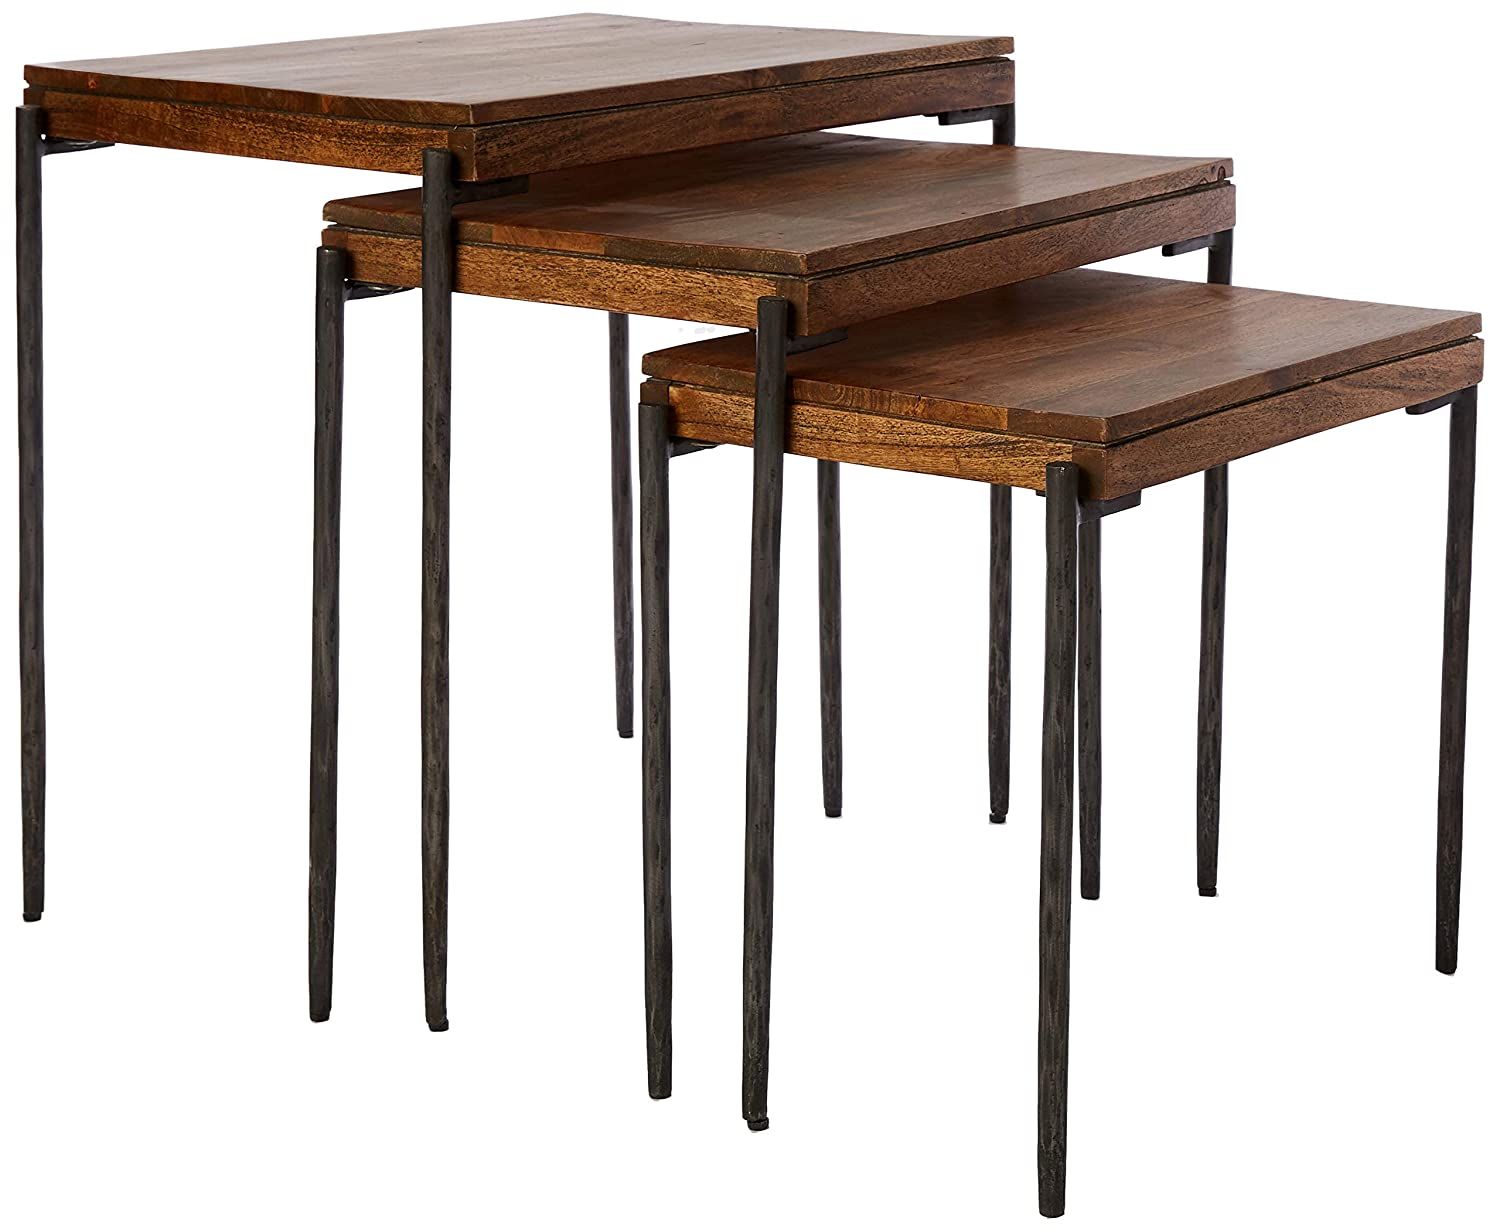 Amazon Com Hekman Furniture 23710 Nest Of Tables Kitchen Dining